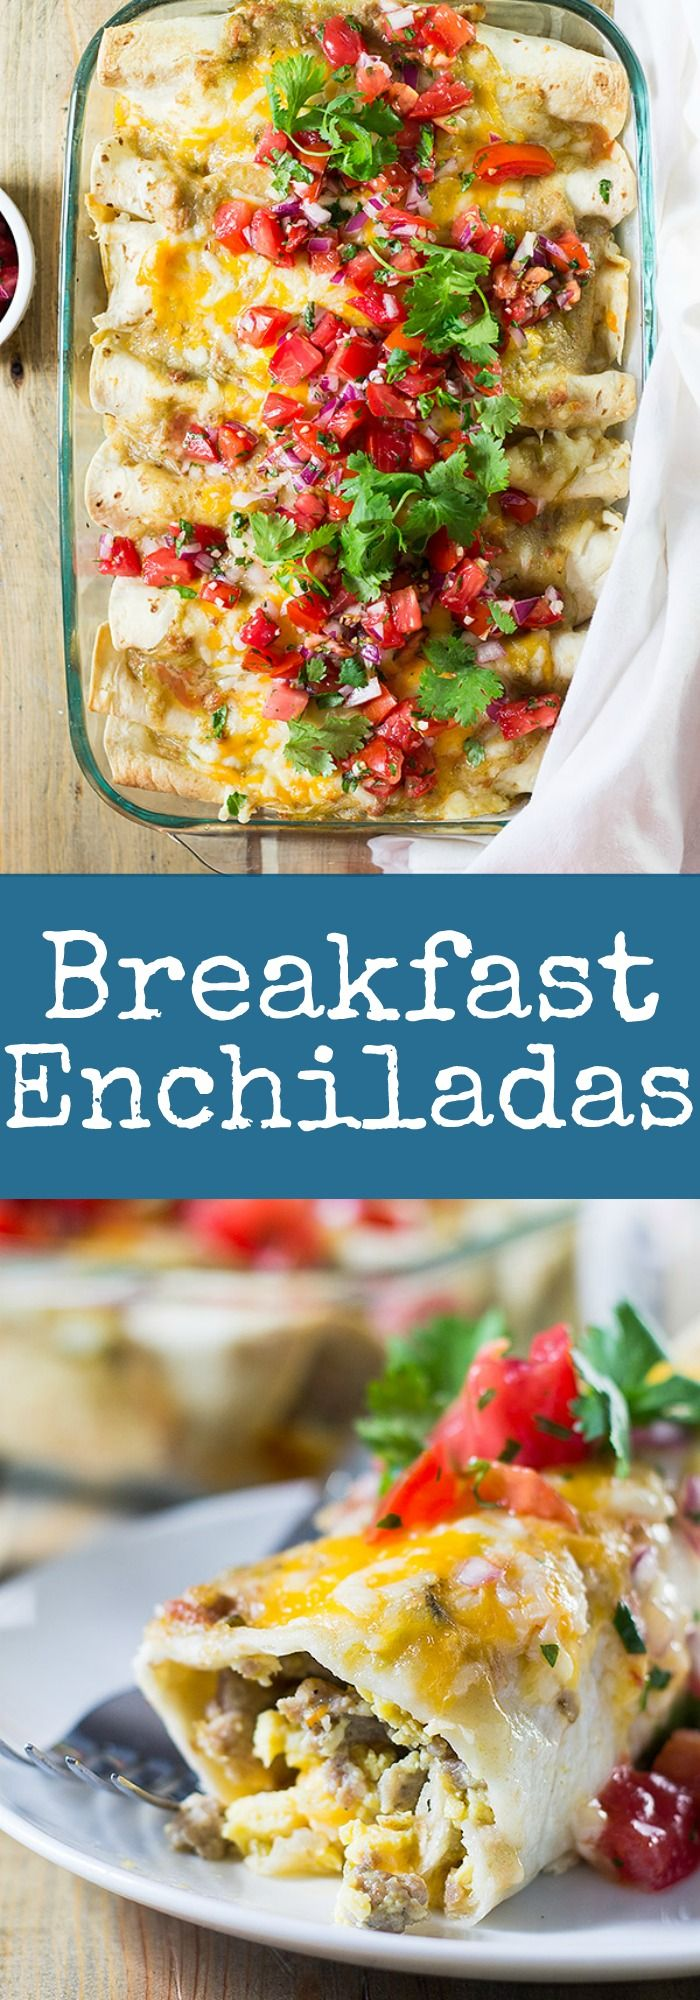 Breakfast Enchiladas are filled with scrambled eggs, sausage, green chilies and…